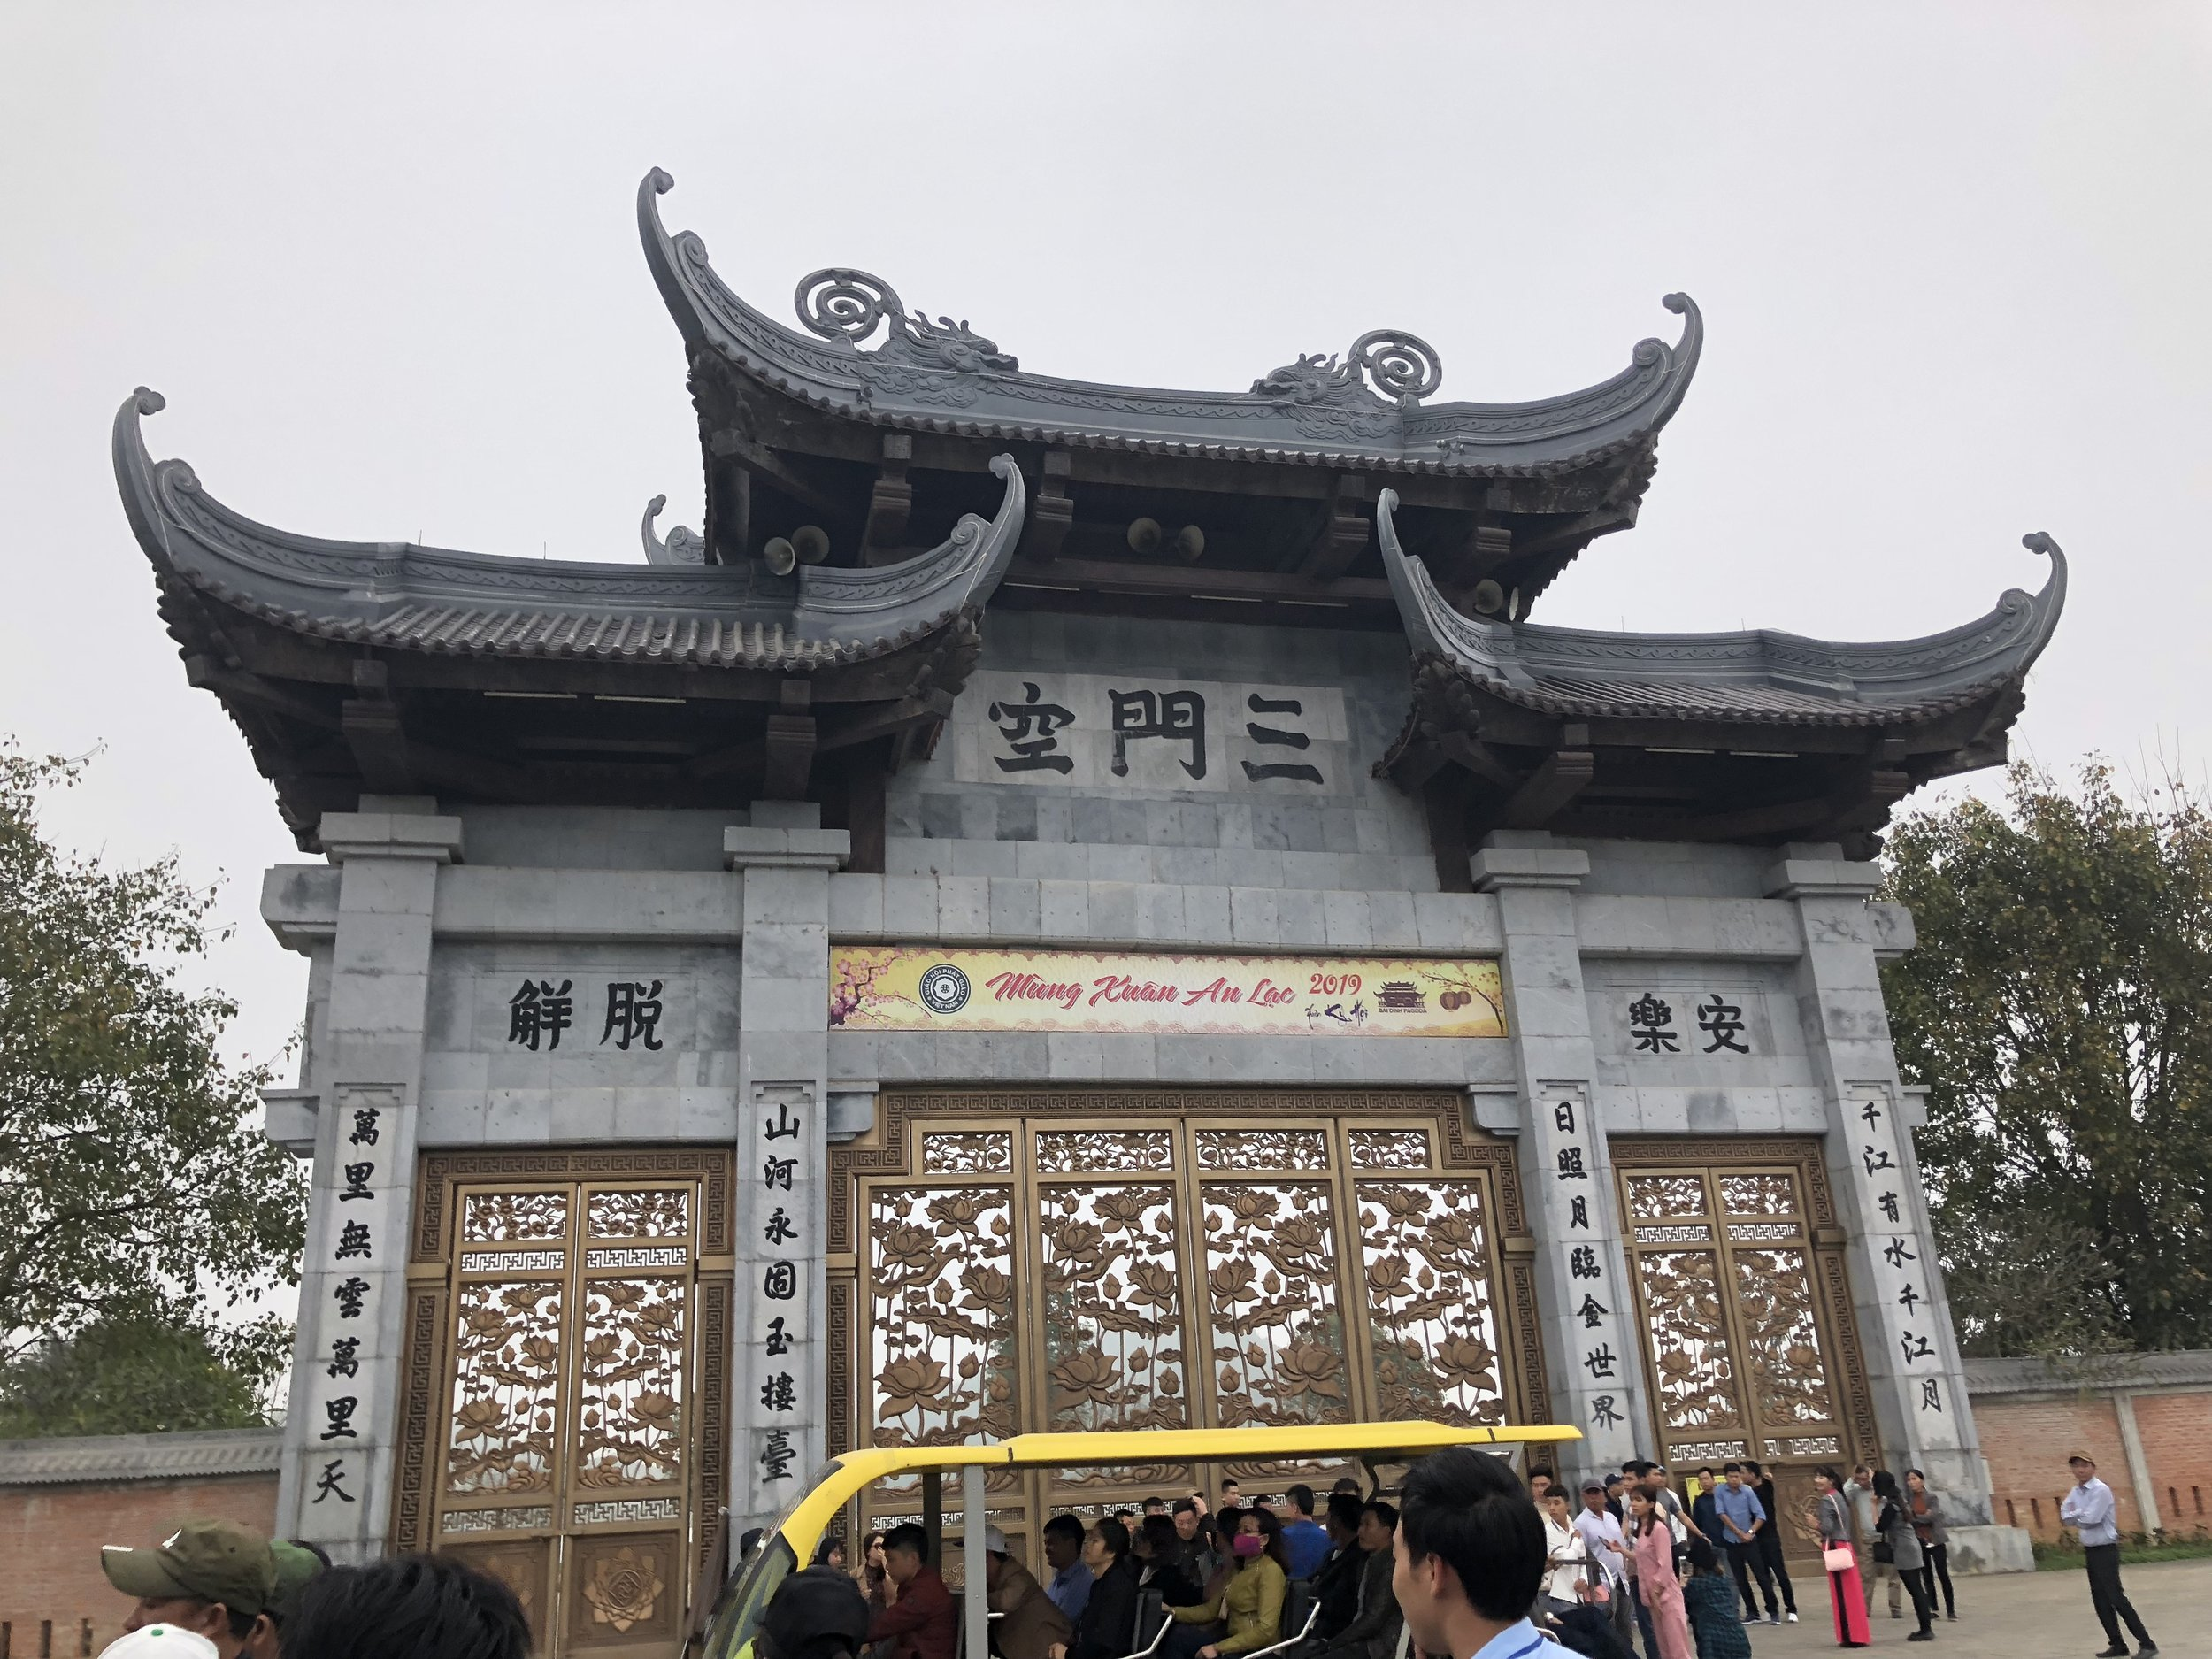 The entry gate of Bái Đính Temple. It's currently closed because the complex is still under renovations.